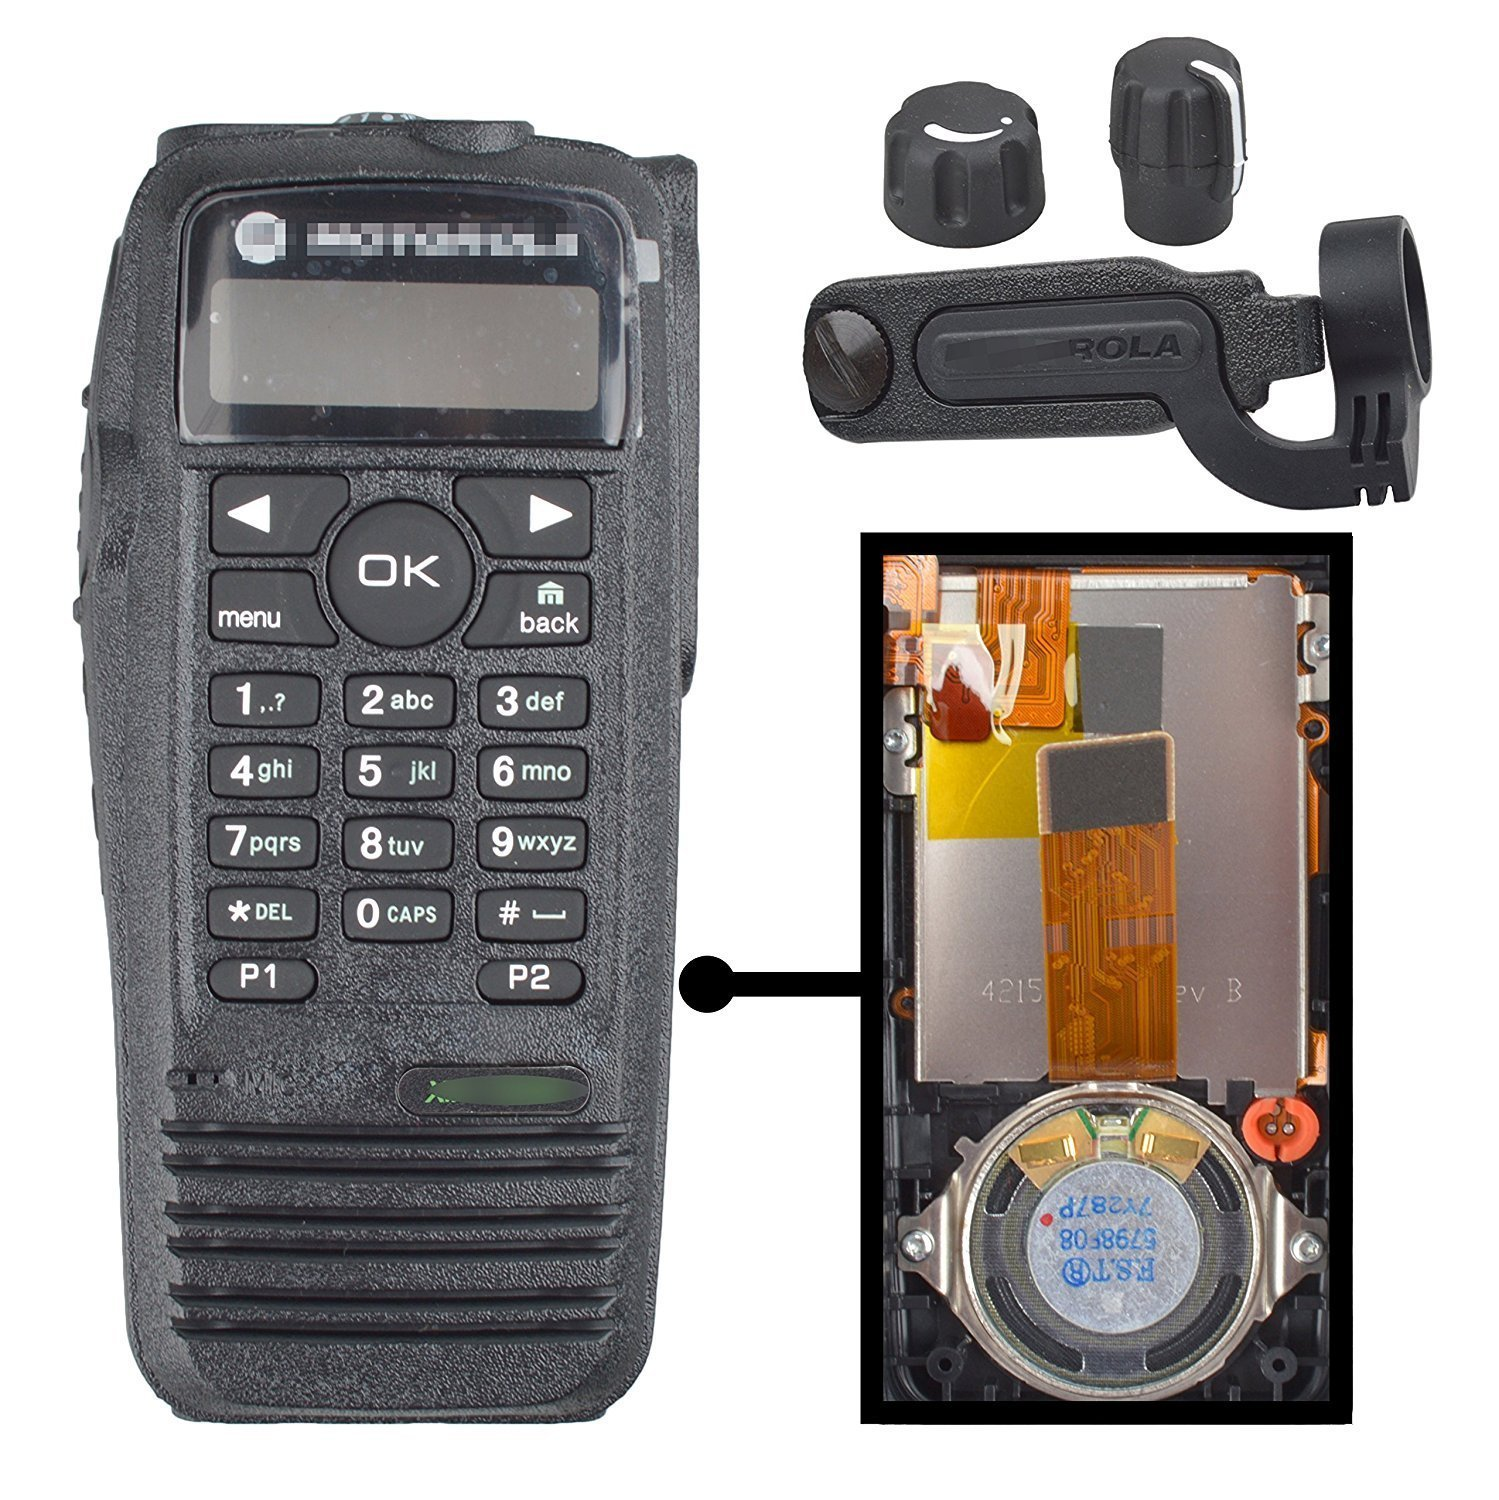 Guanshan PMLN4646 Replacement Housing & OEM Speaker for Motorola XPR6550 Radio